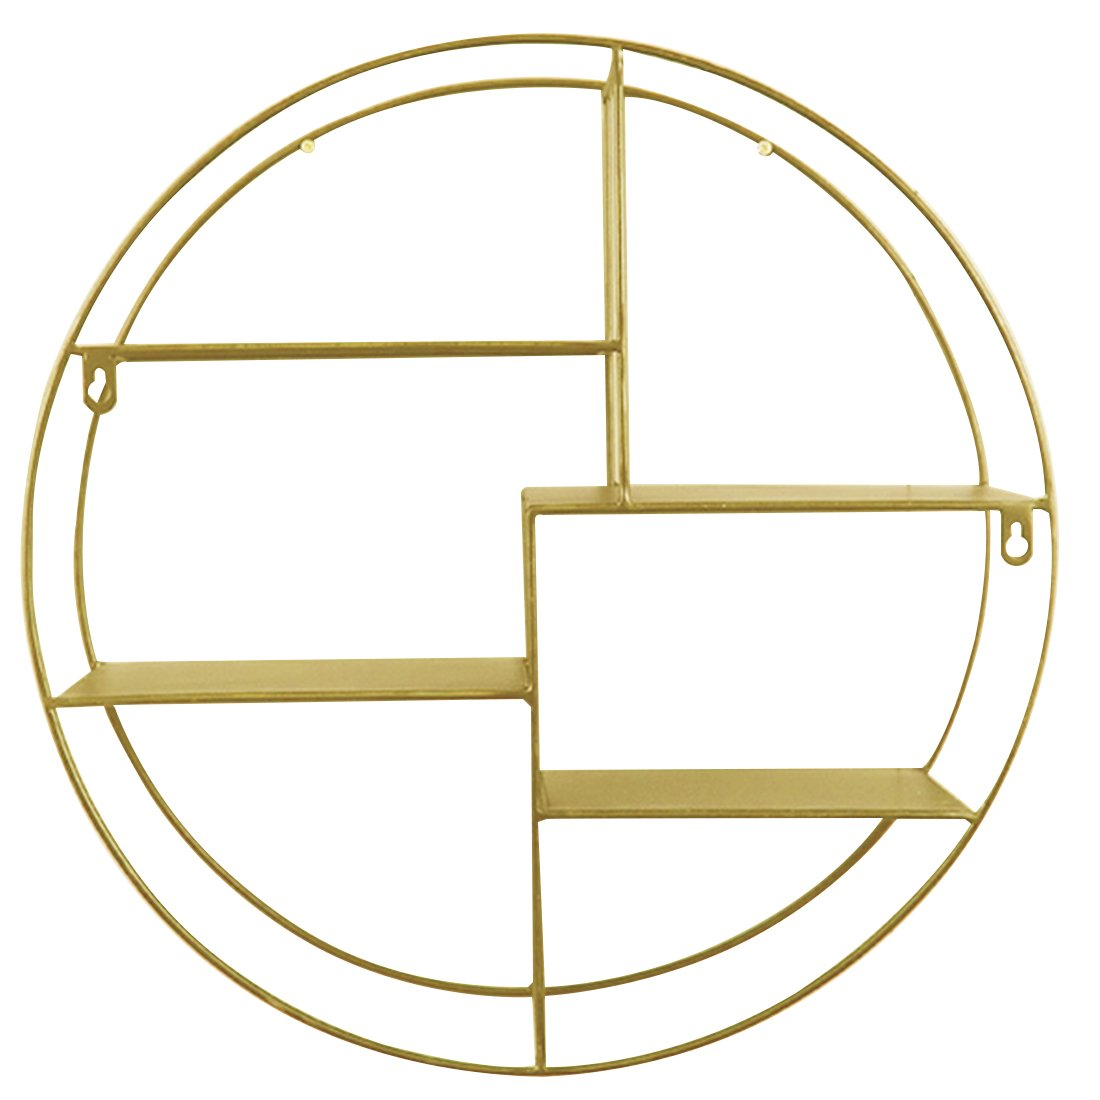 """Wall Mounted 4 Tier Round Metal Display Organizer Rack Holder Floating Shelves for Bedroom Living Room Kitchen Office Golden 20""""x20""""x5.5"""""""